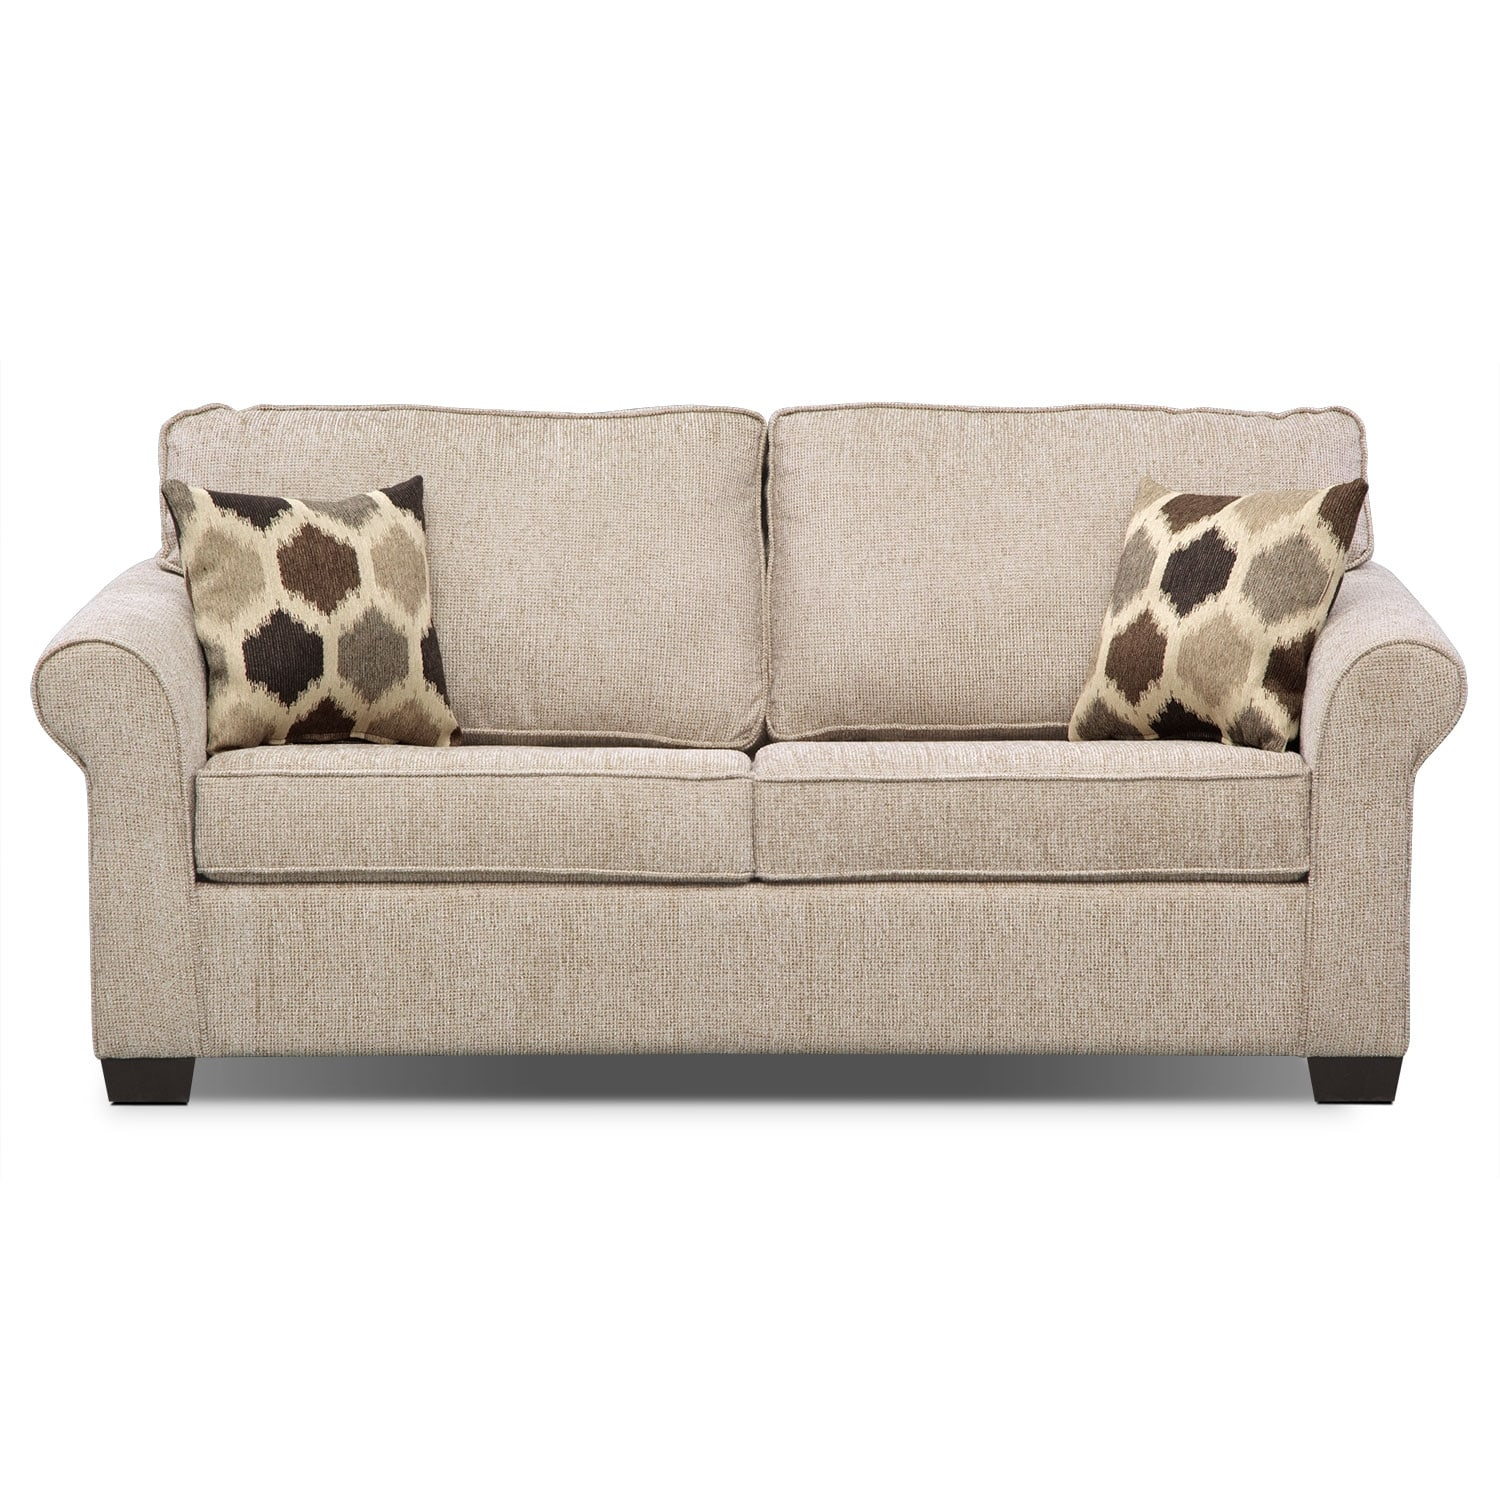 Fletcher Full Innerspring Sleeper Sofa Beige Value